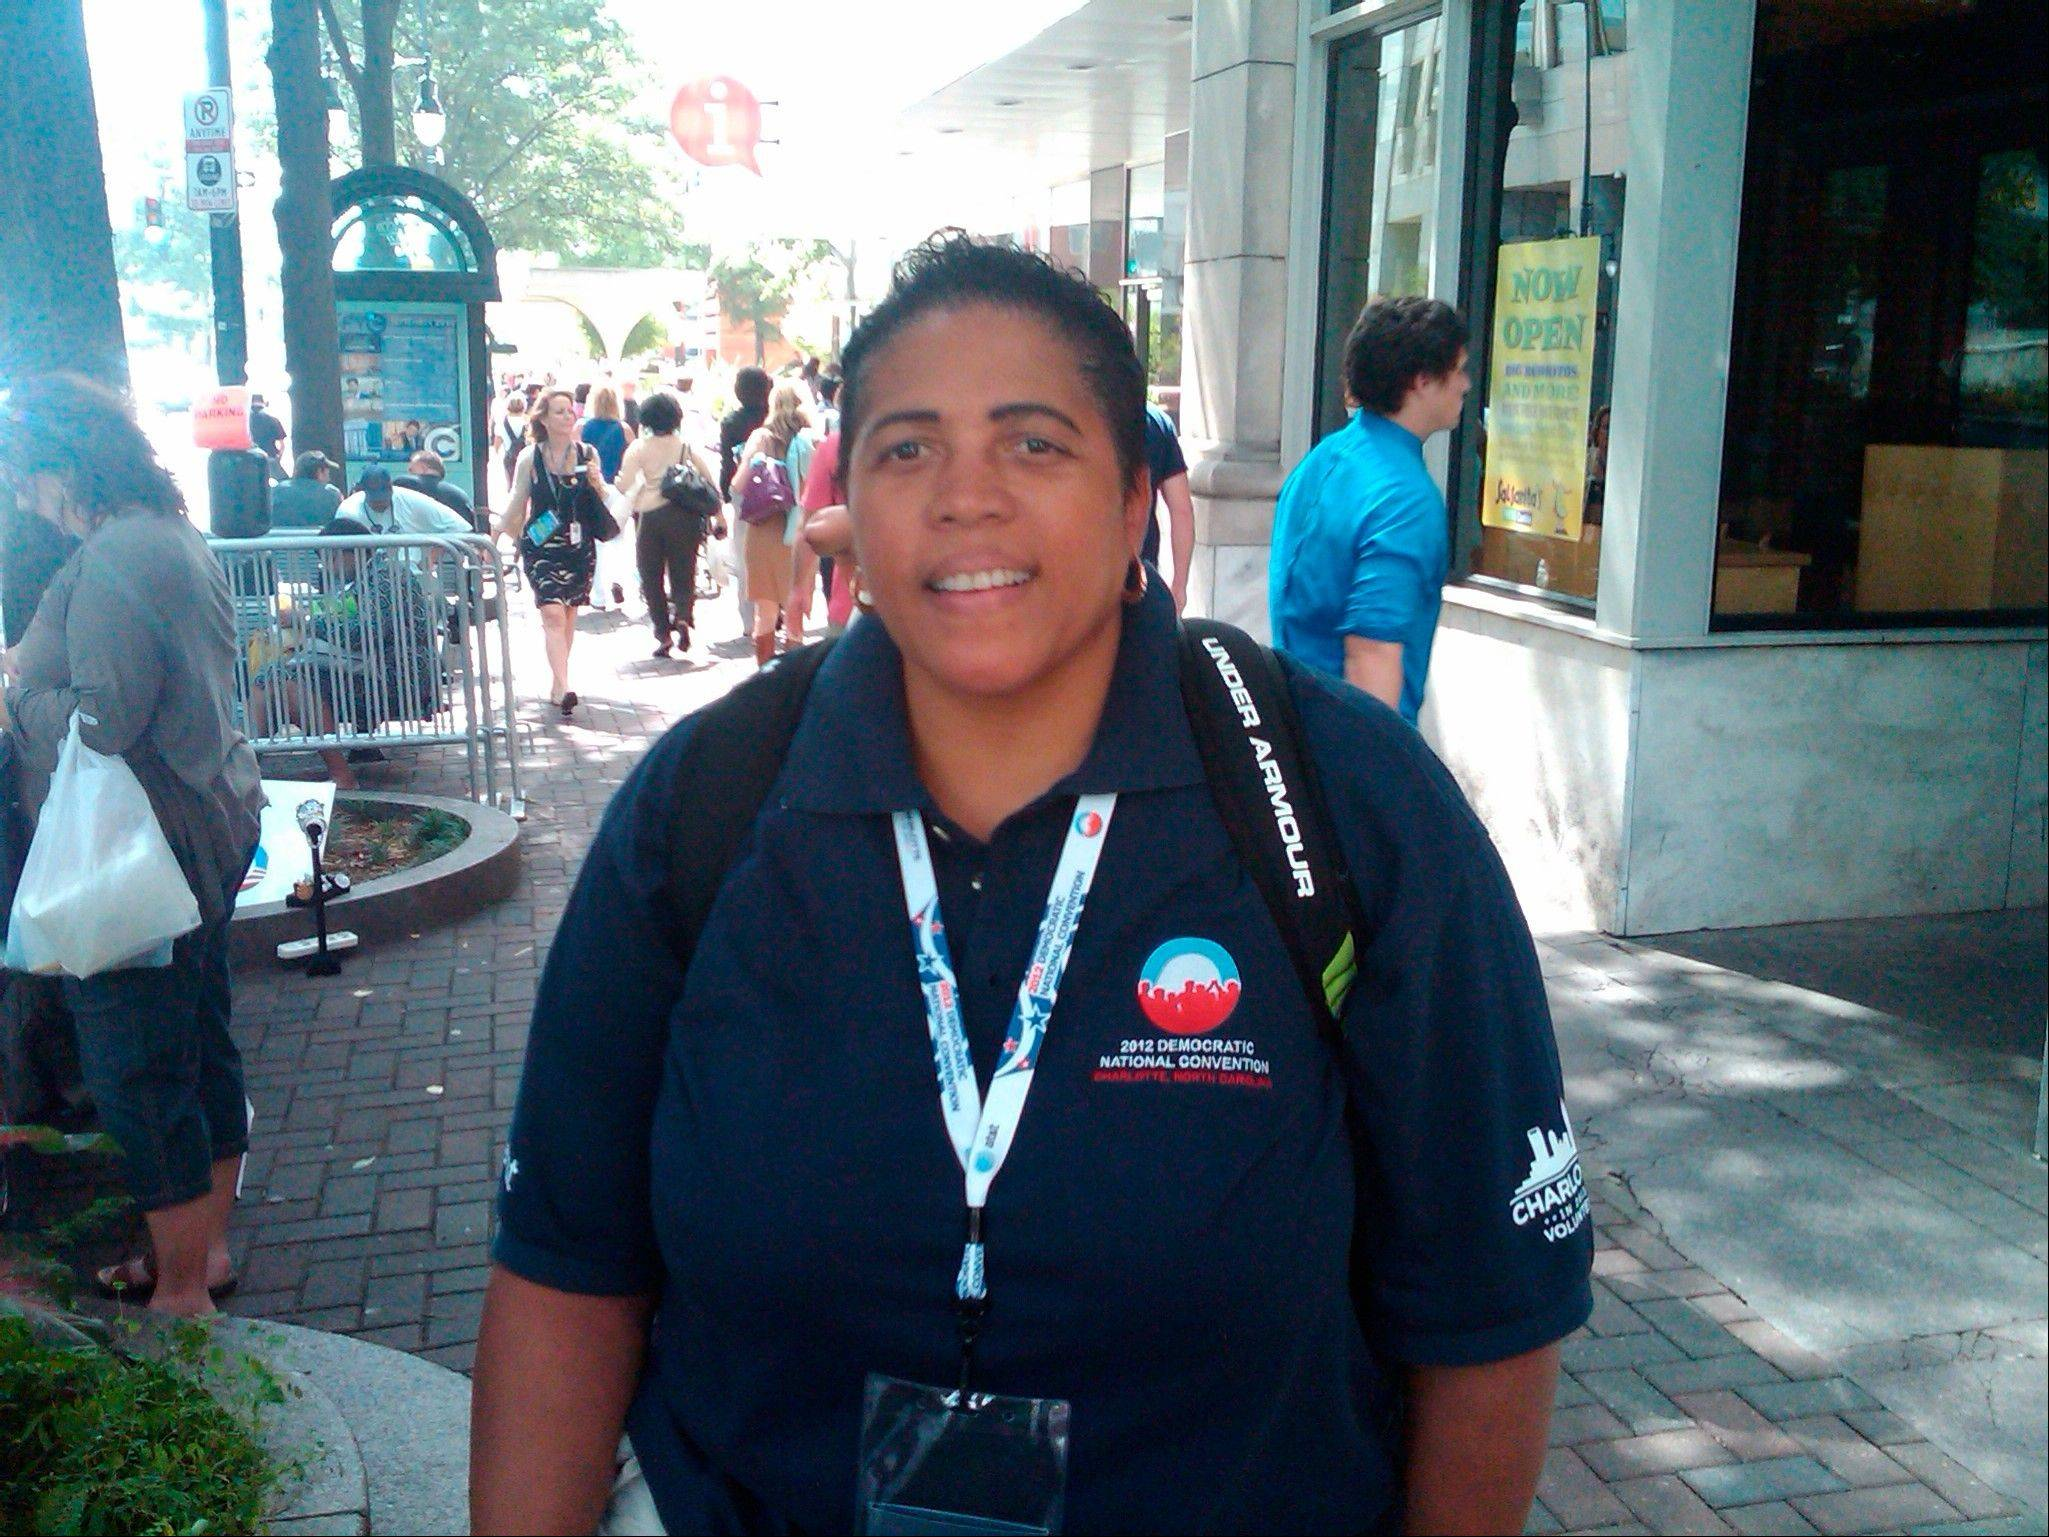 Andrea Chambliss poses for a photo Wednesday in Charlotte, N.C. Chambliss is a volunteer from California who came to Charlotte to see President Obama speak and is disappointed she won�t get to be there Thursday after Obama moved his speech.